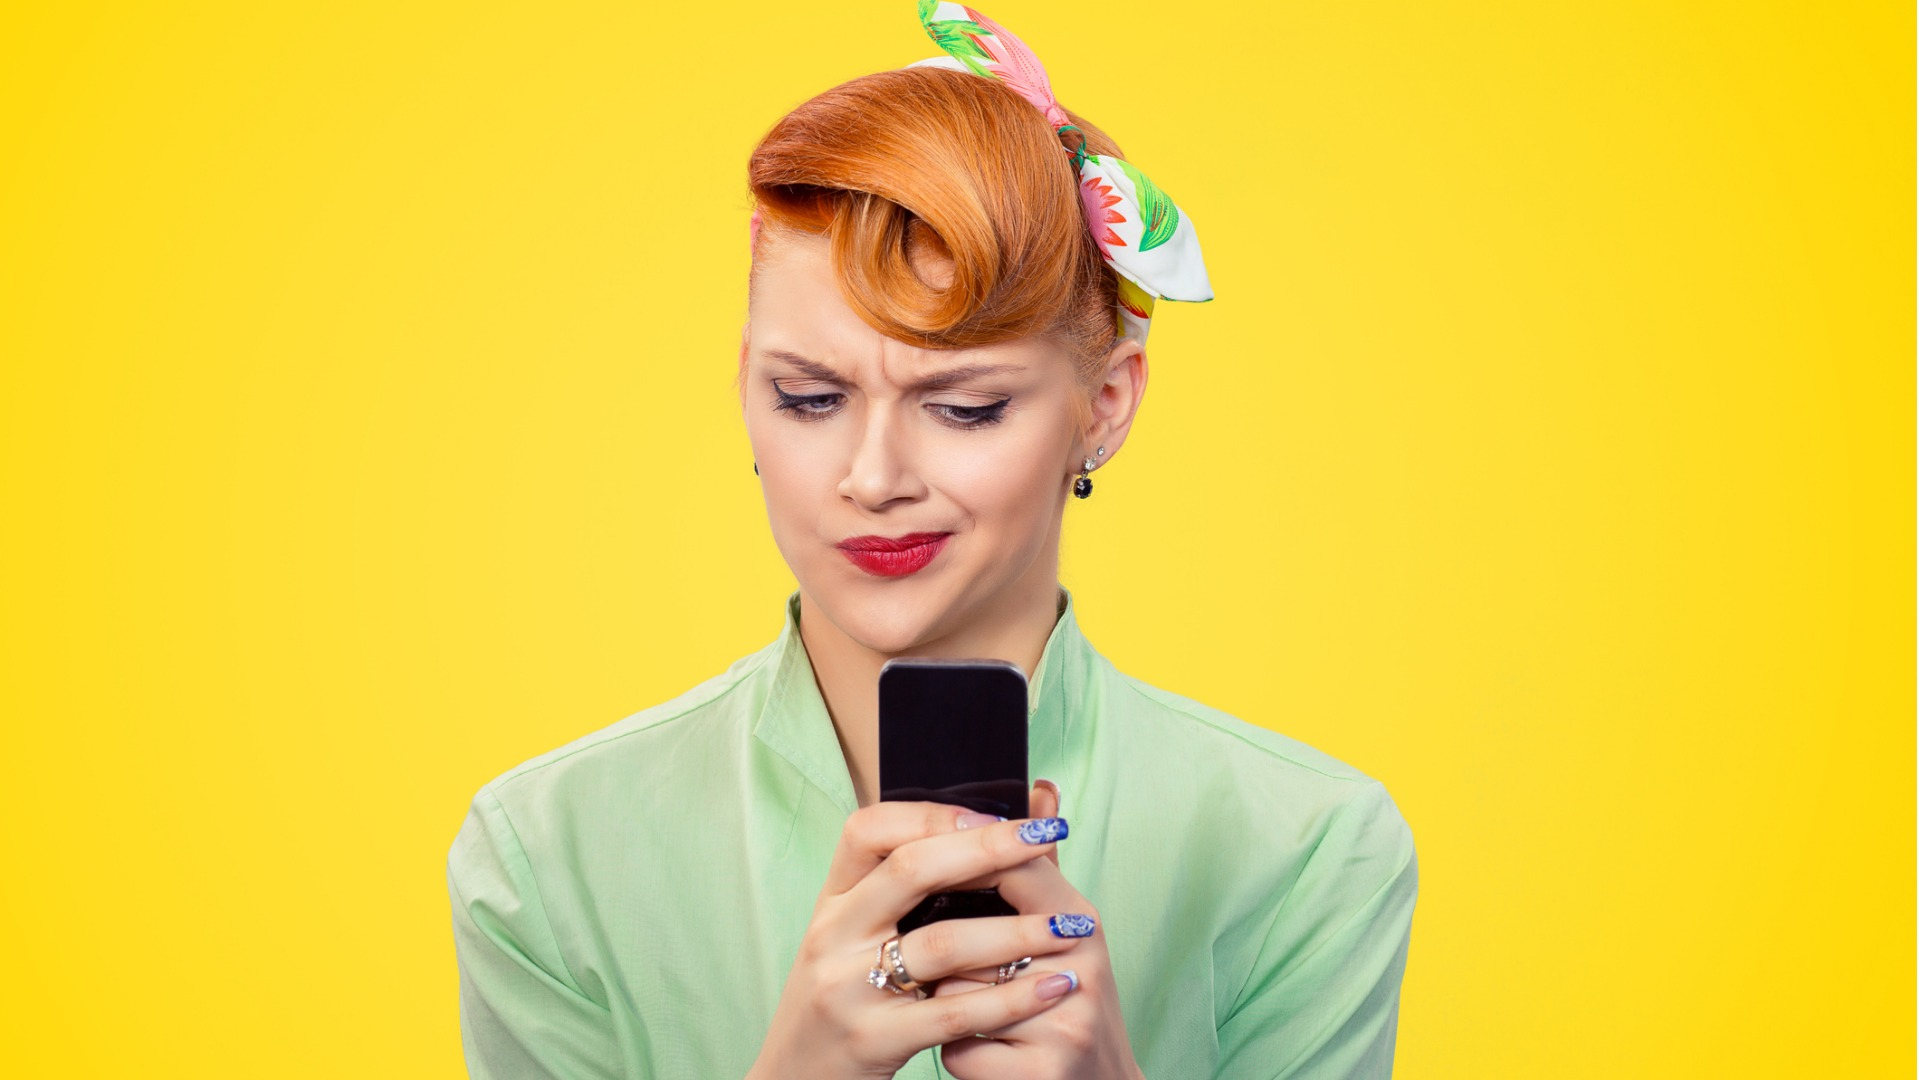 unhappy-serious-woman-looking-at-texting-on-phone-displeased-with-picture-id1035150660